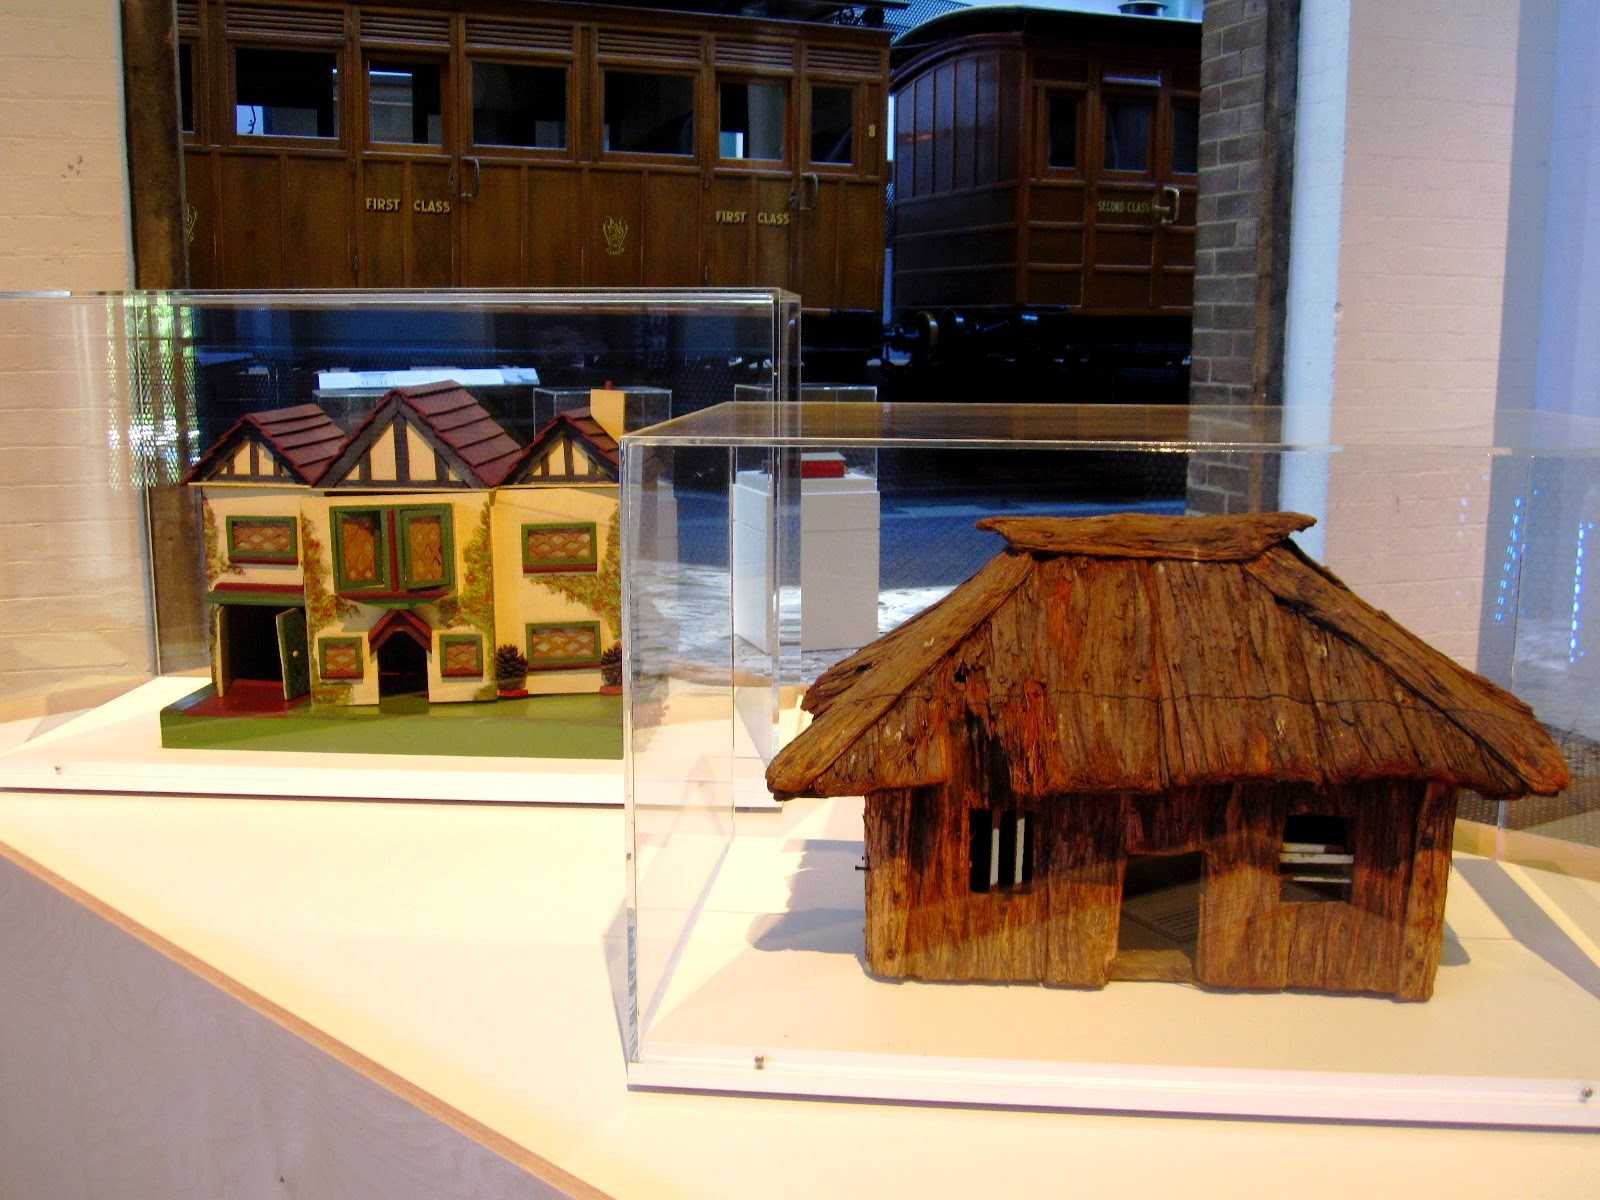 A vintage doll's house and model hut on display in a museum.